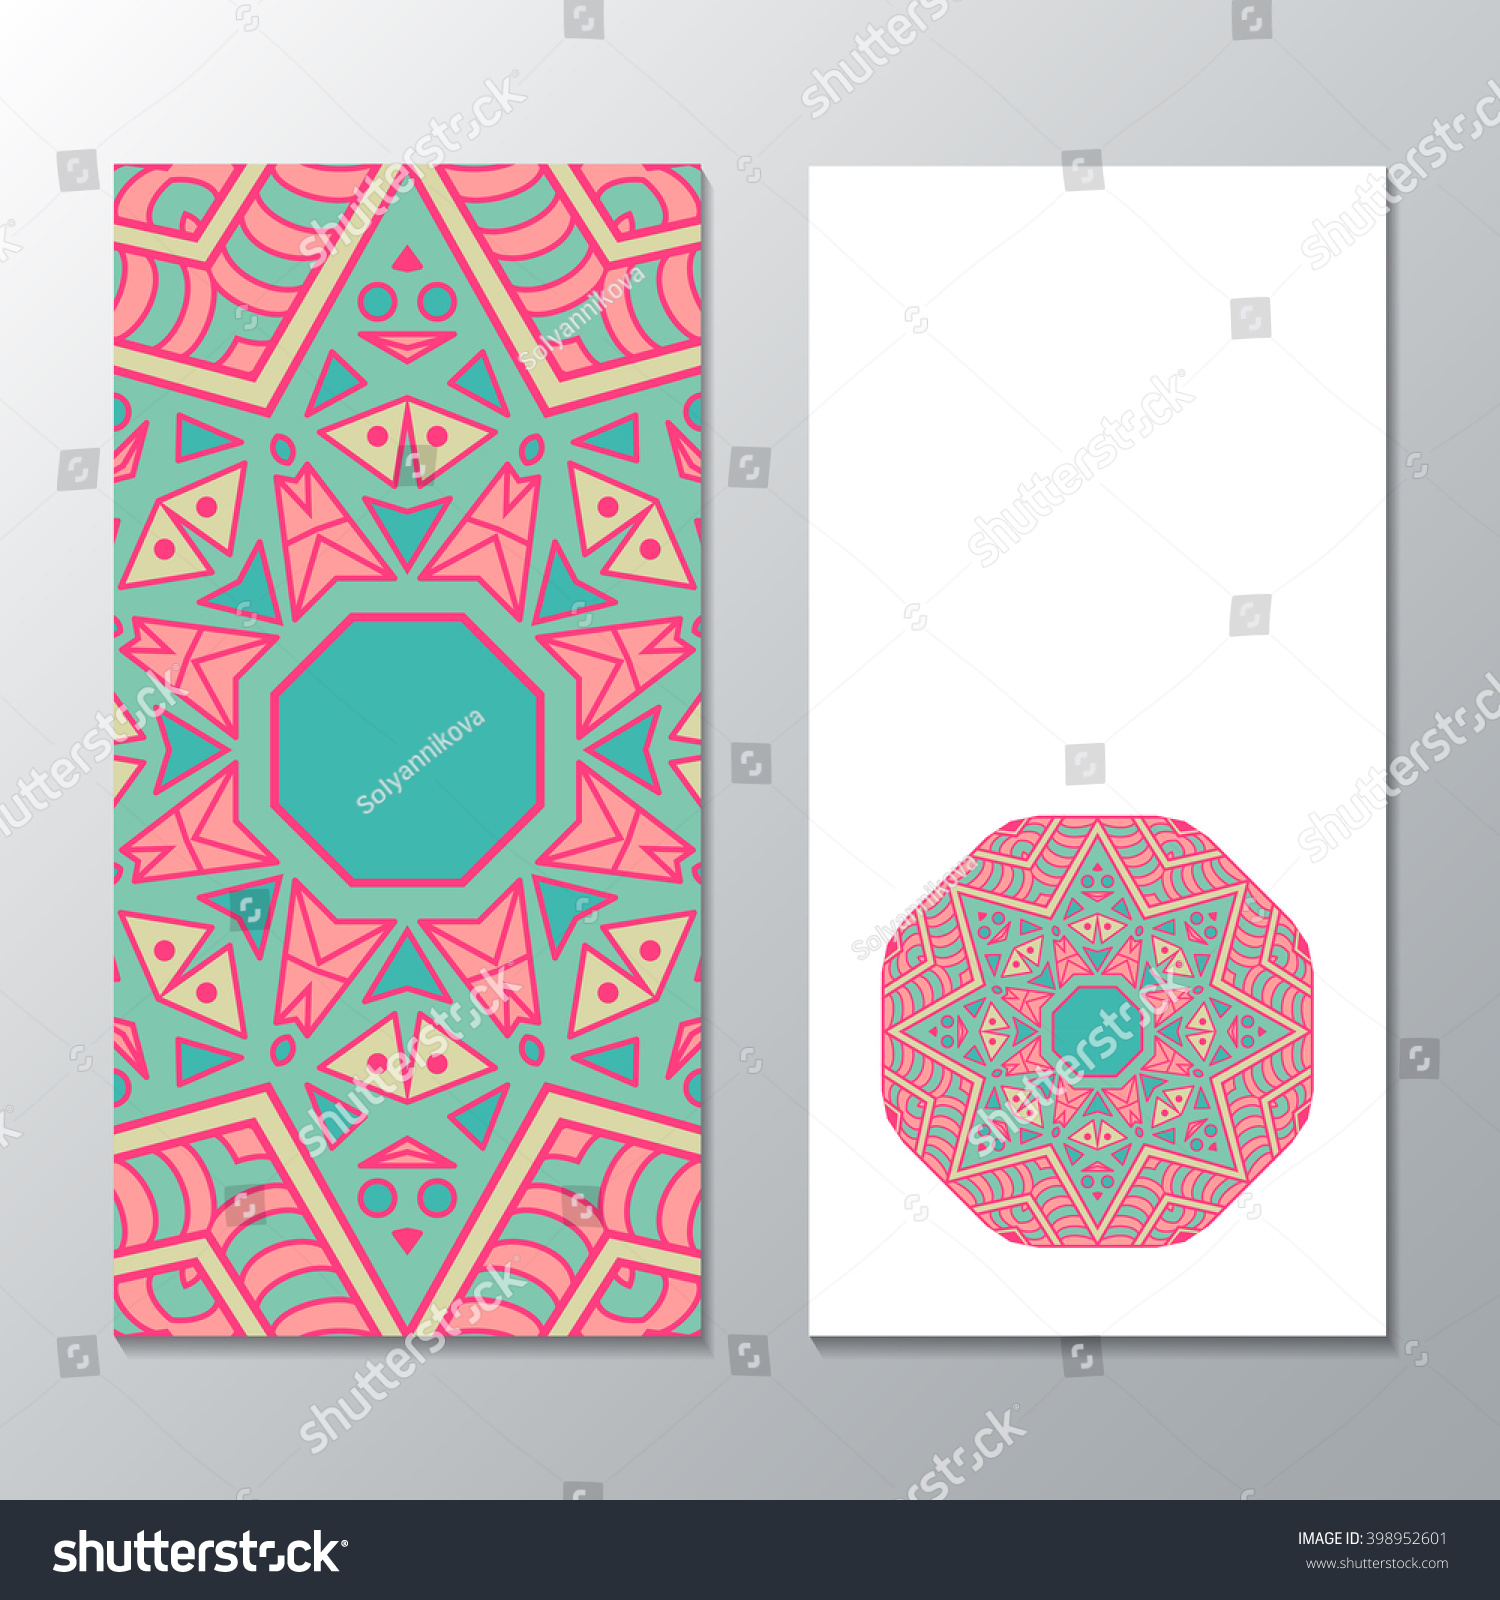 Vertical banner templates with mandala pattern Design for flyer banner invitation greeting card Ornament flyer